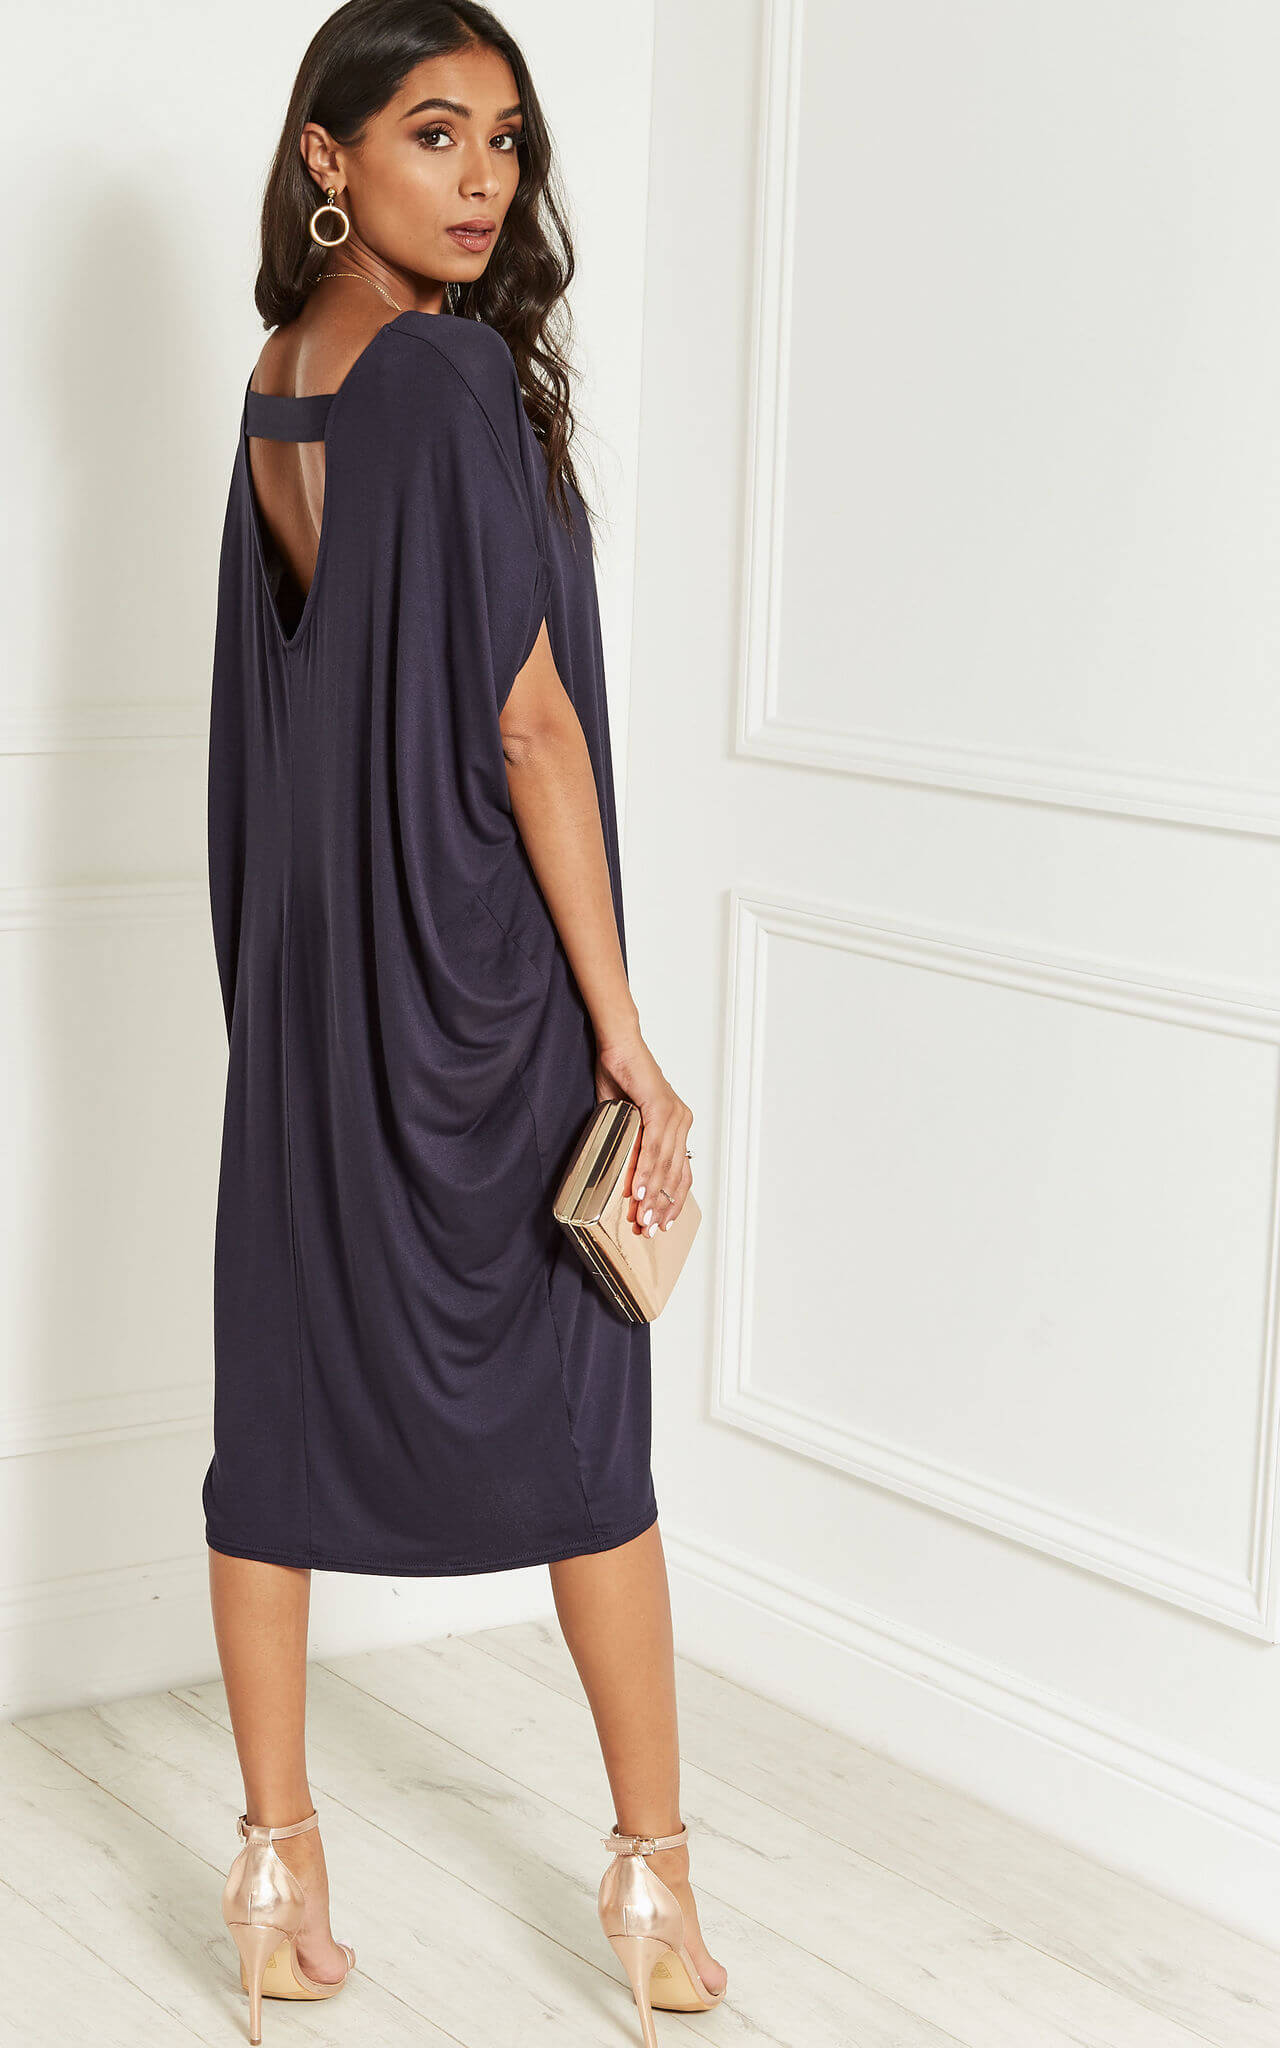 Model wears navy scoop back dress in a slouchy fit with rose gold heels and a clutch bag